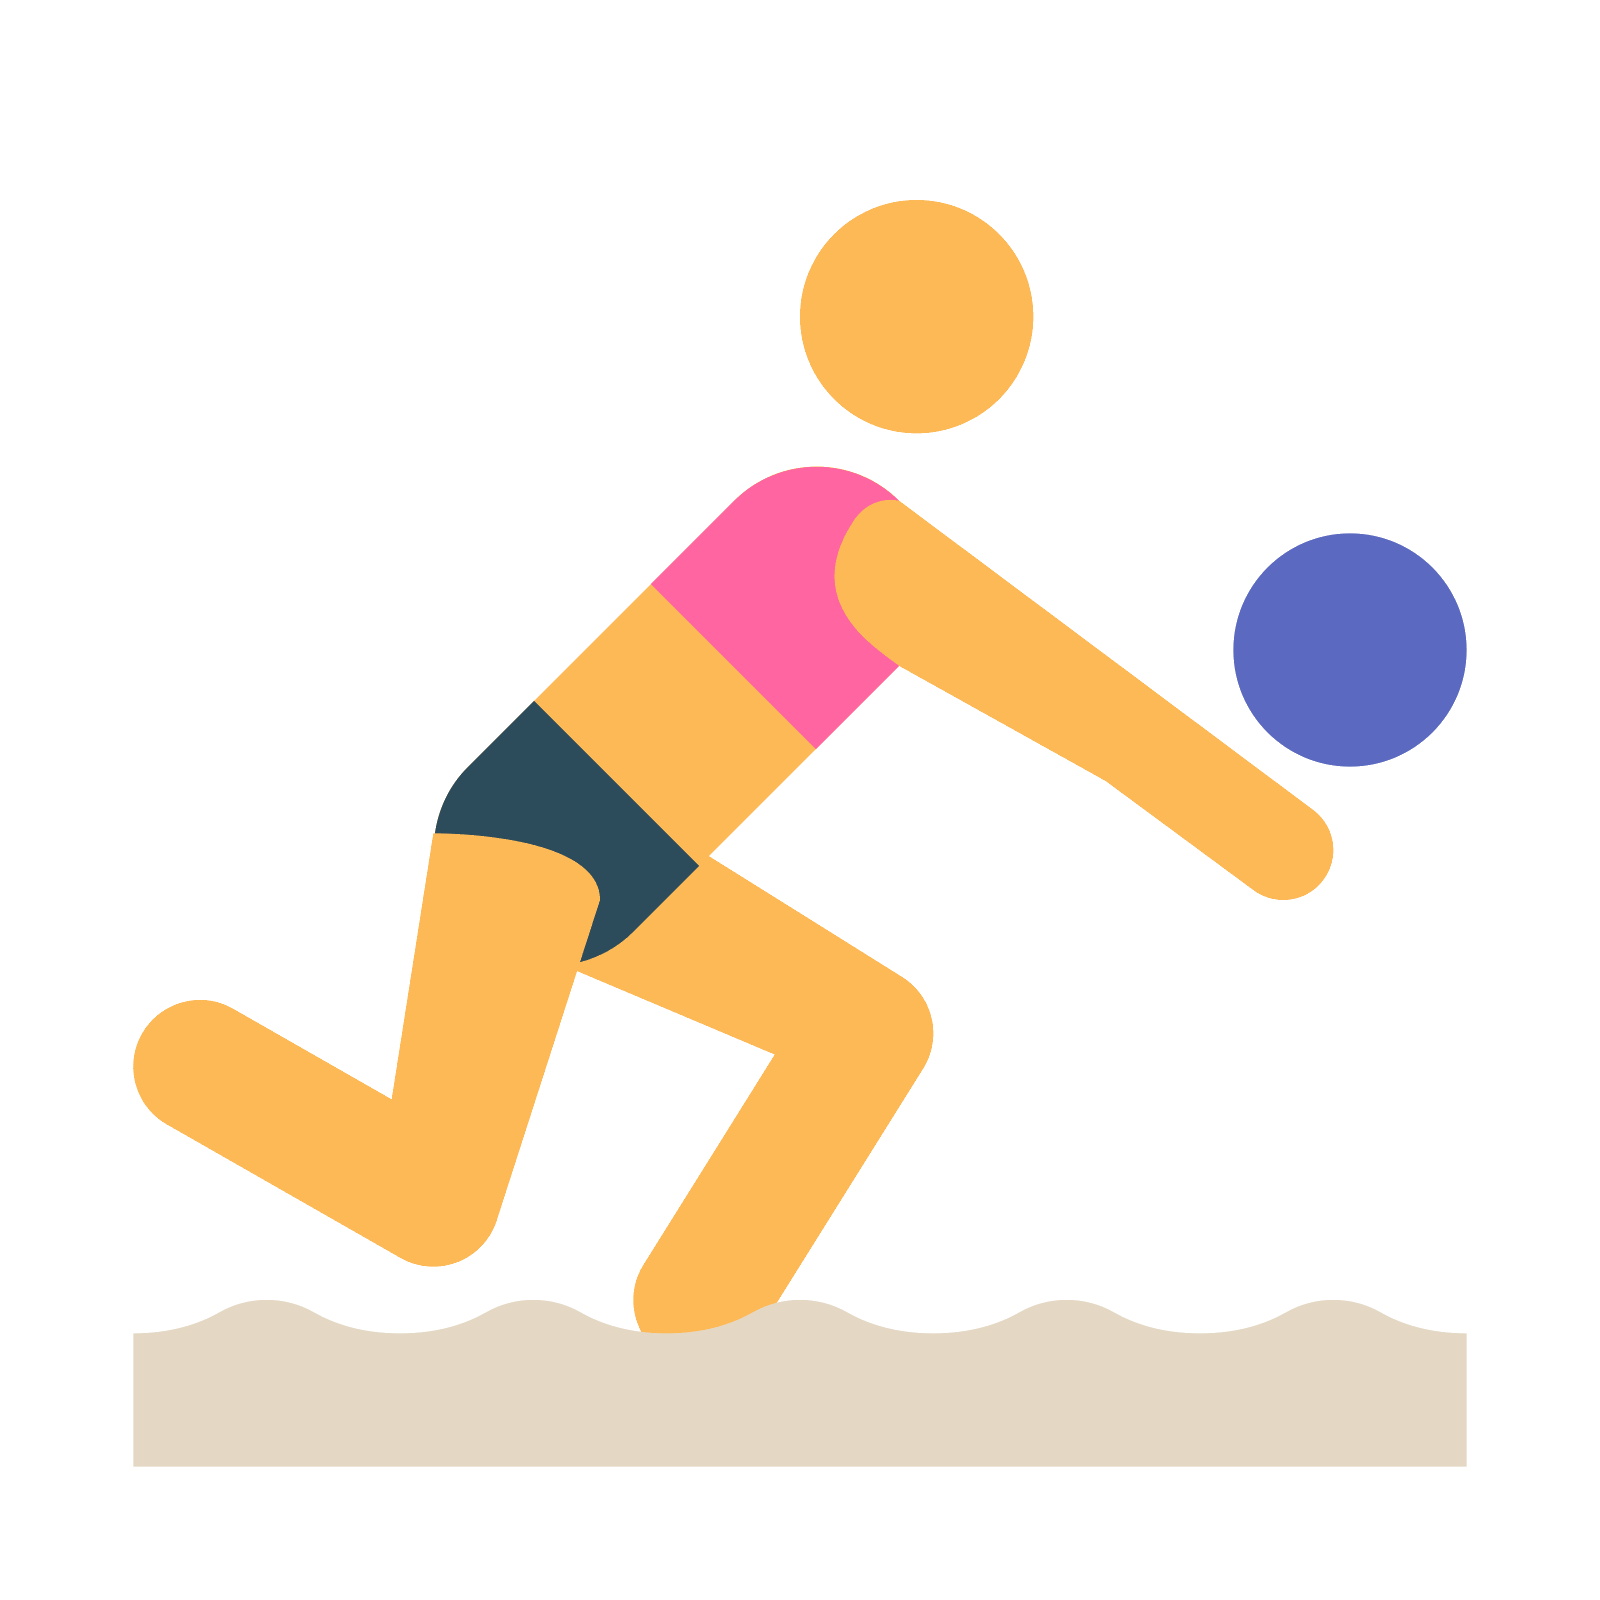 Icon beach free download. Clipart volleyball sand volleyball